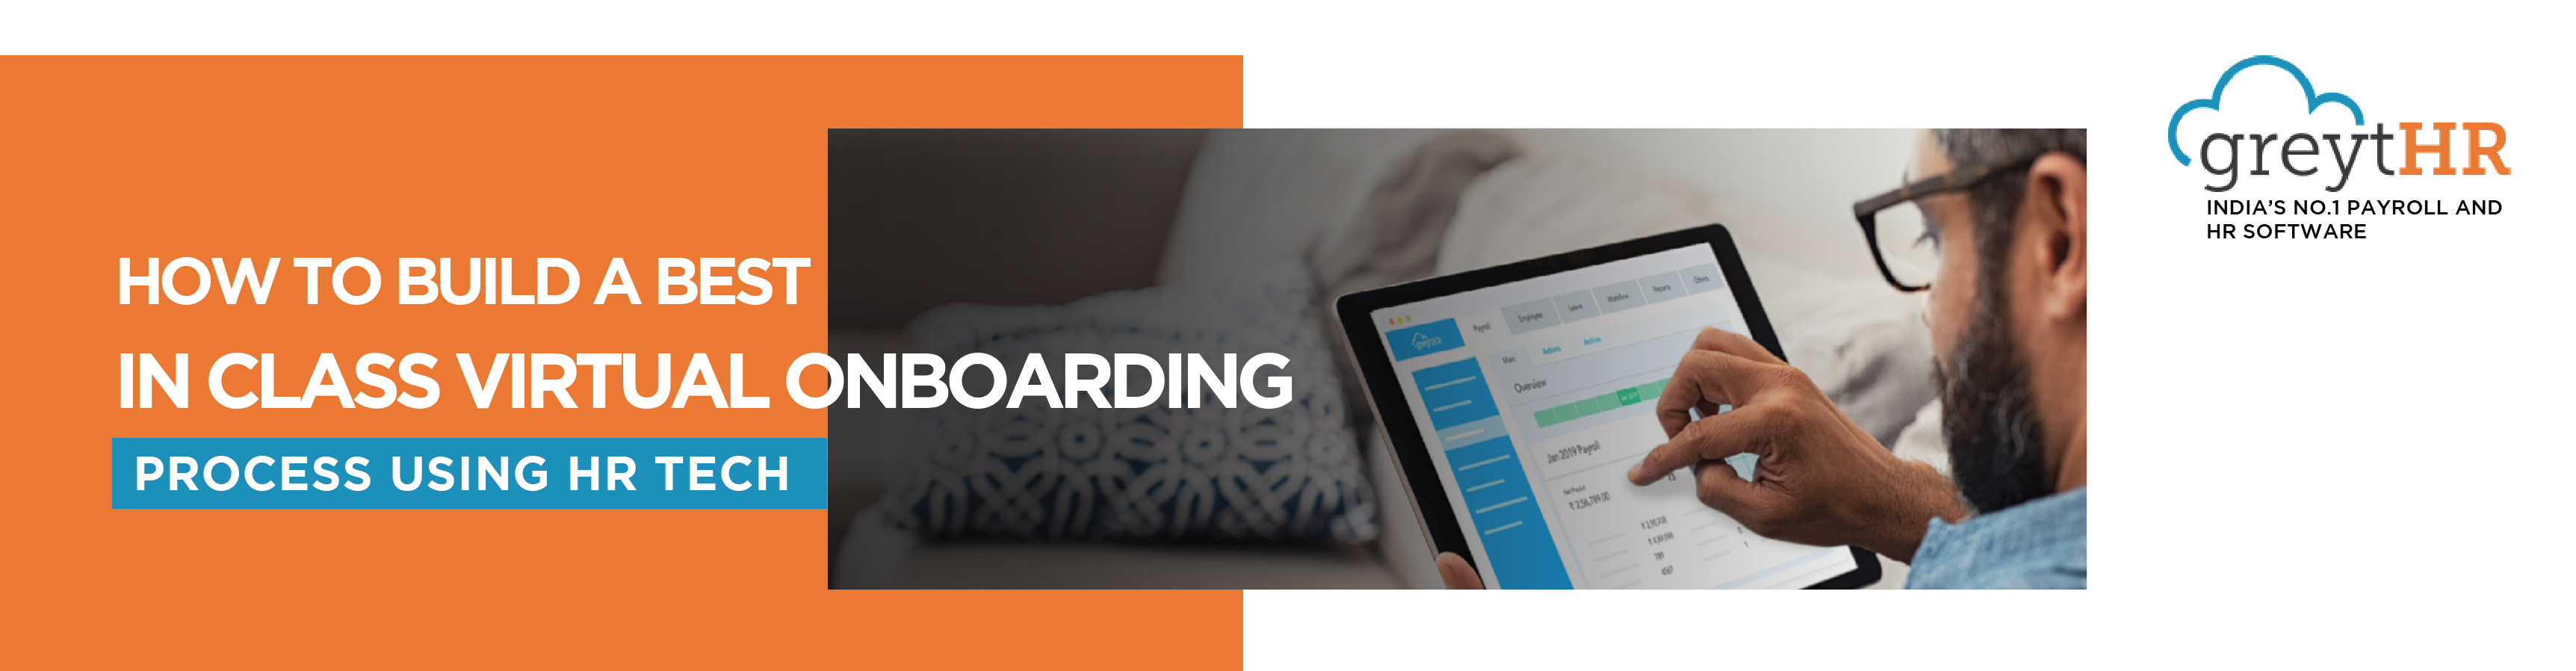 How to build a best in class virtual onboarding process using HR Tech